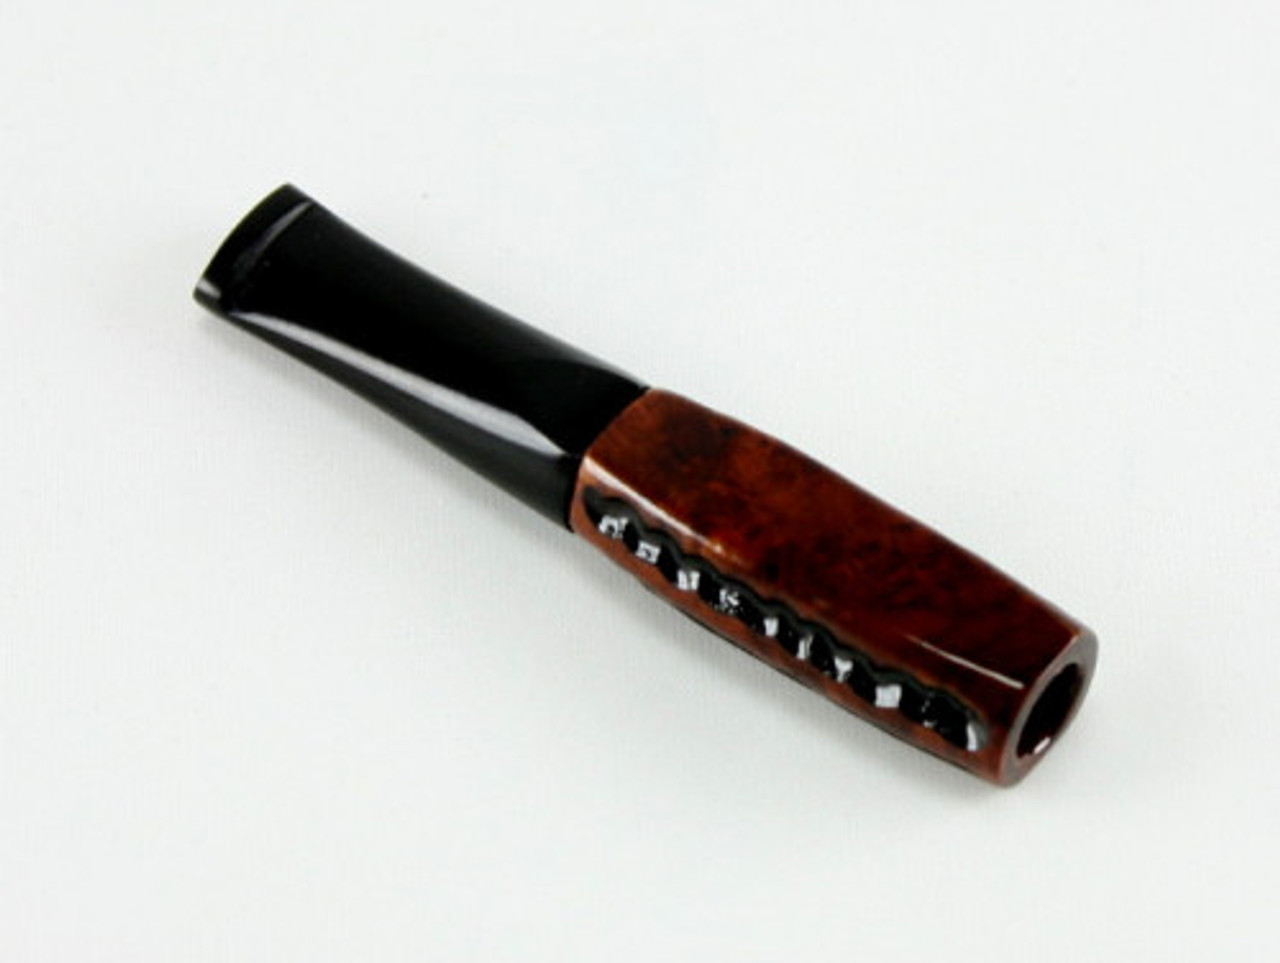 Weldon Rosewood Cigarette Holder with Cleanable Filter